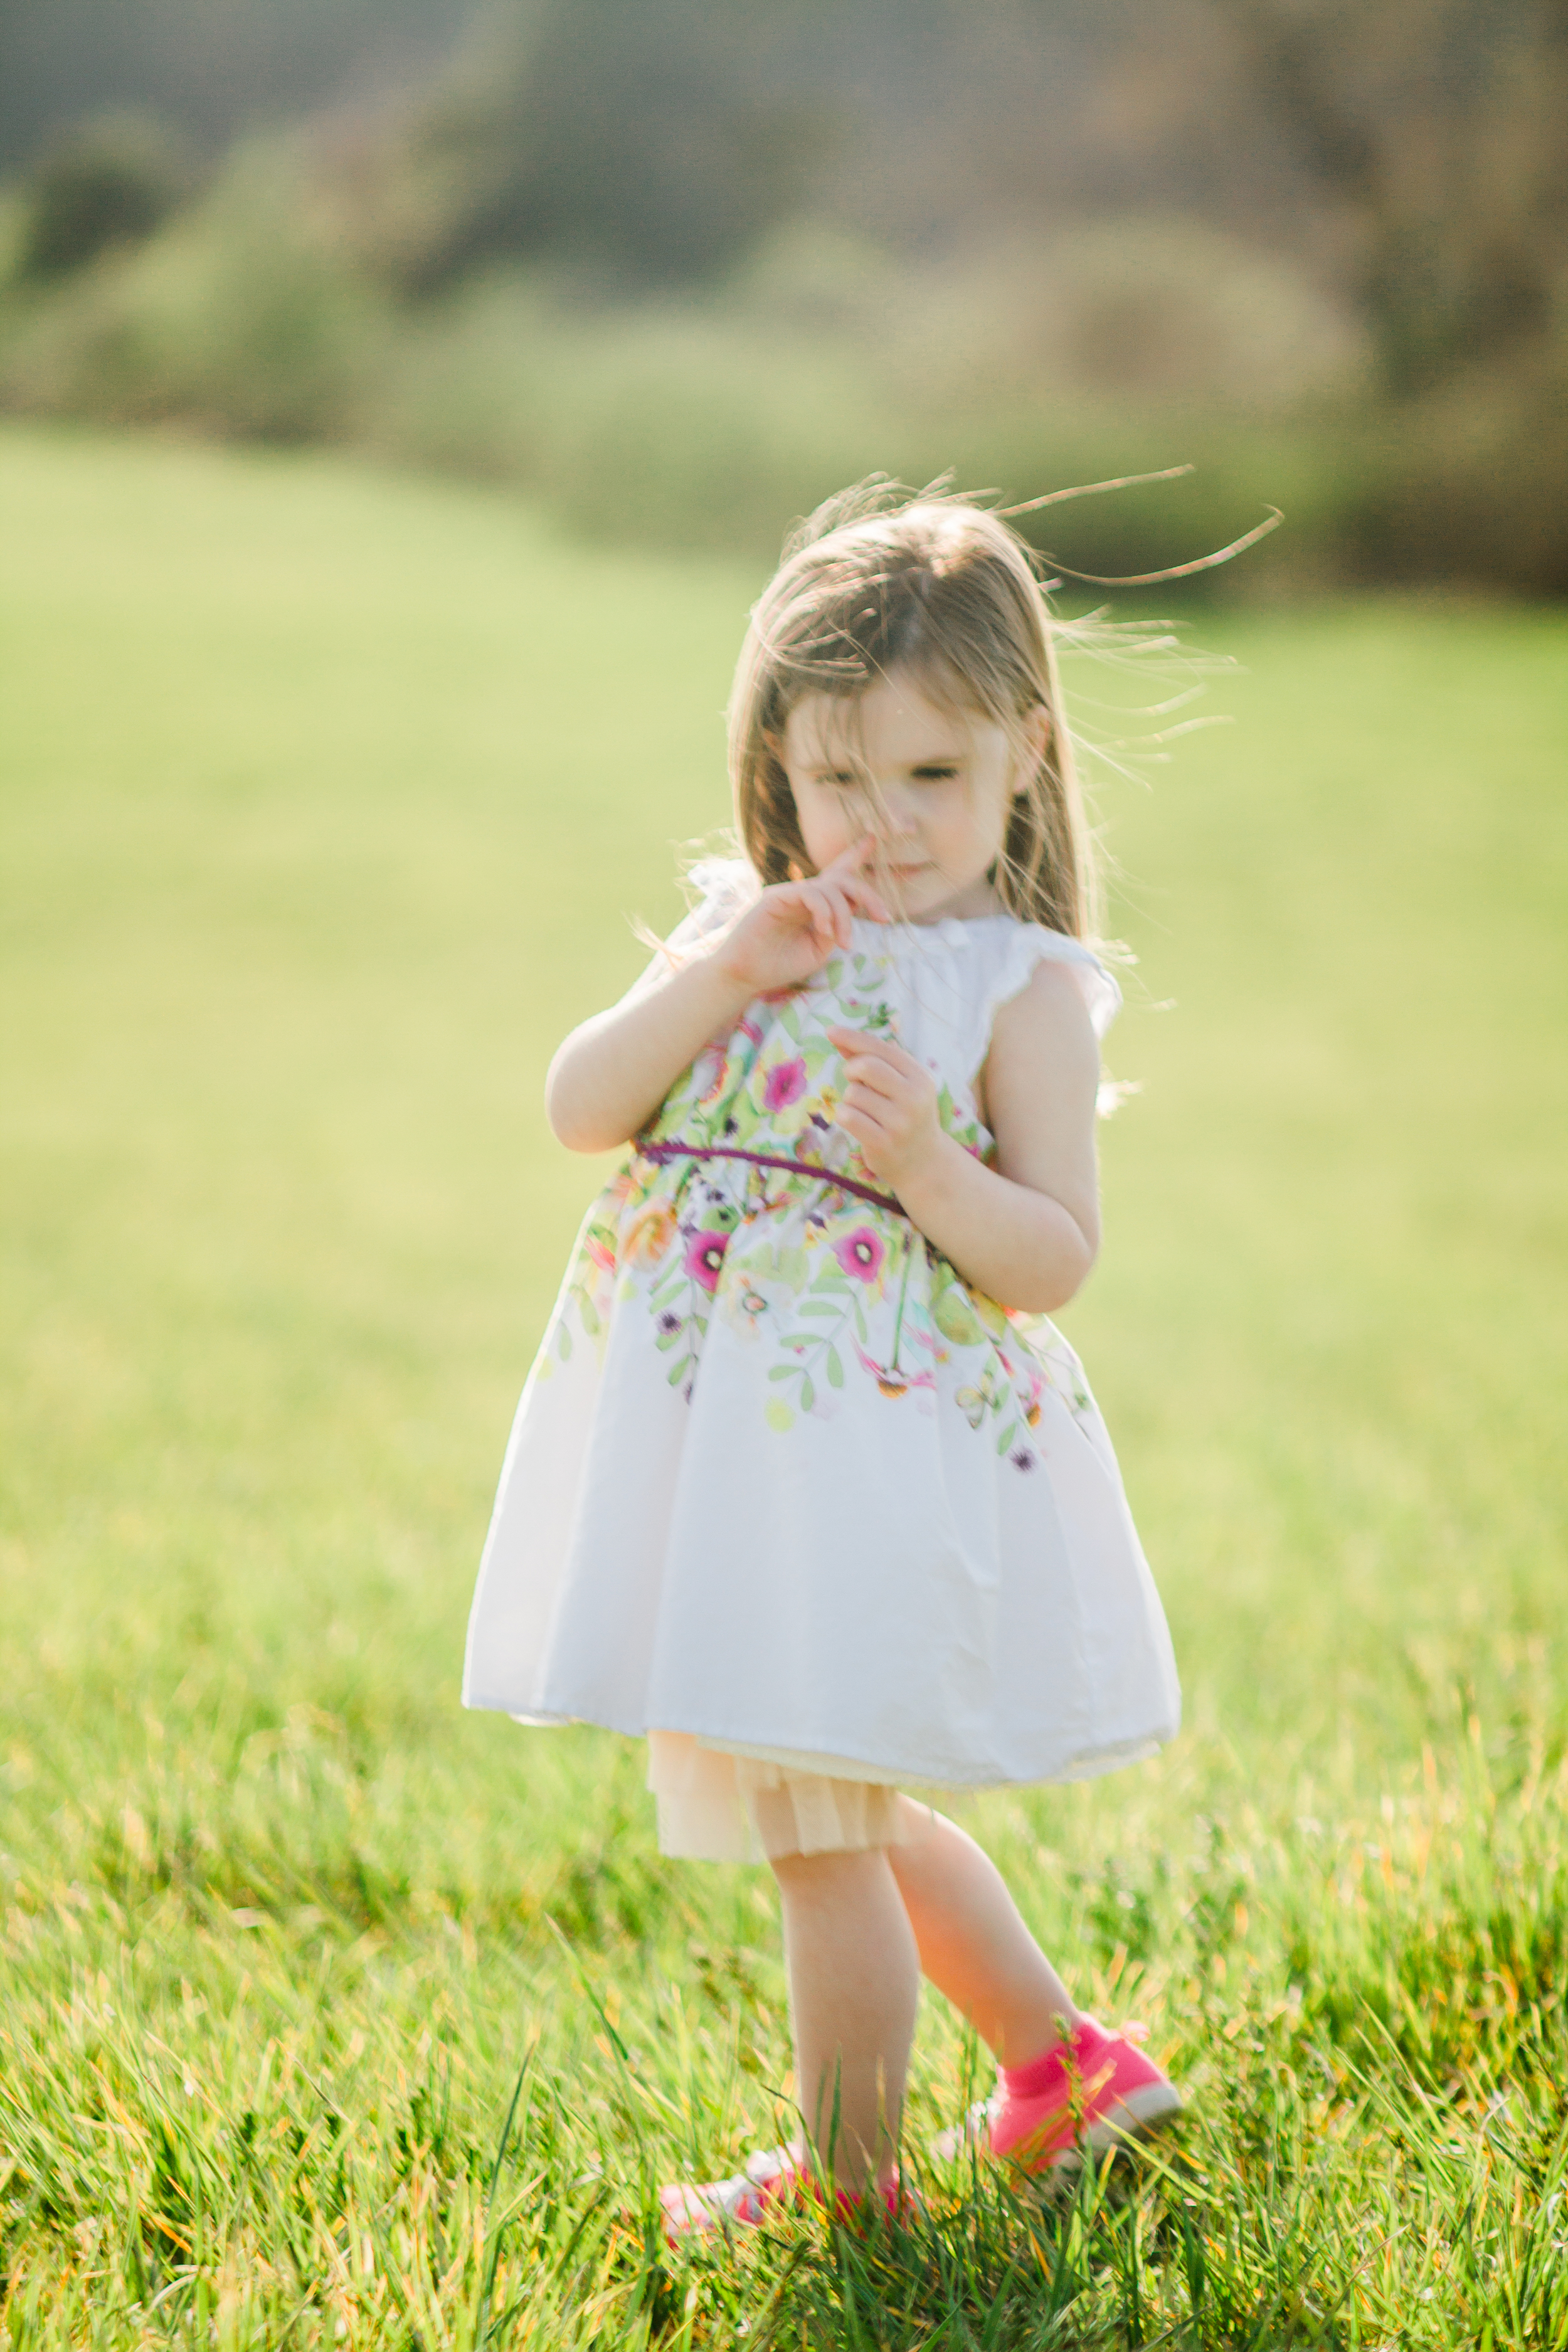 2016-04-21 Lily at the Field-38.jpg